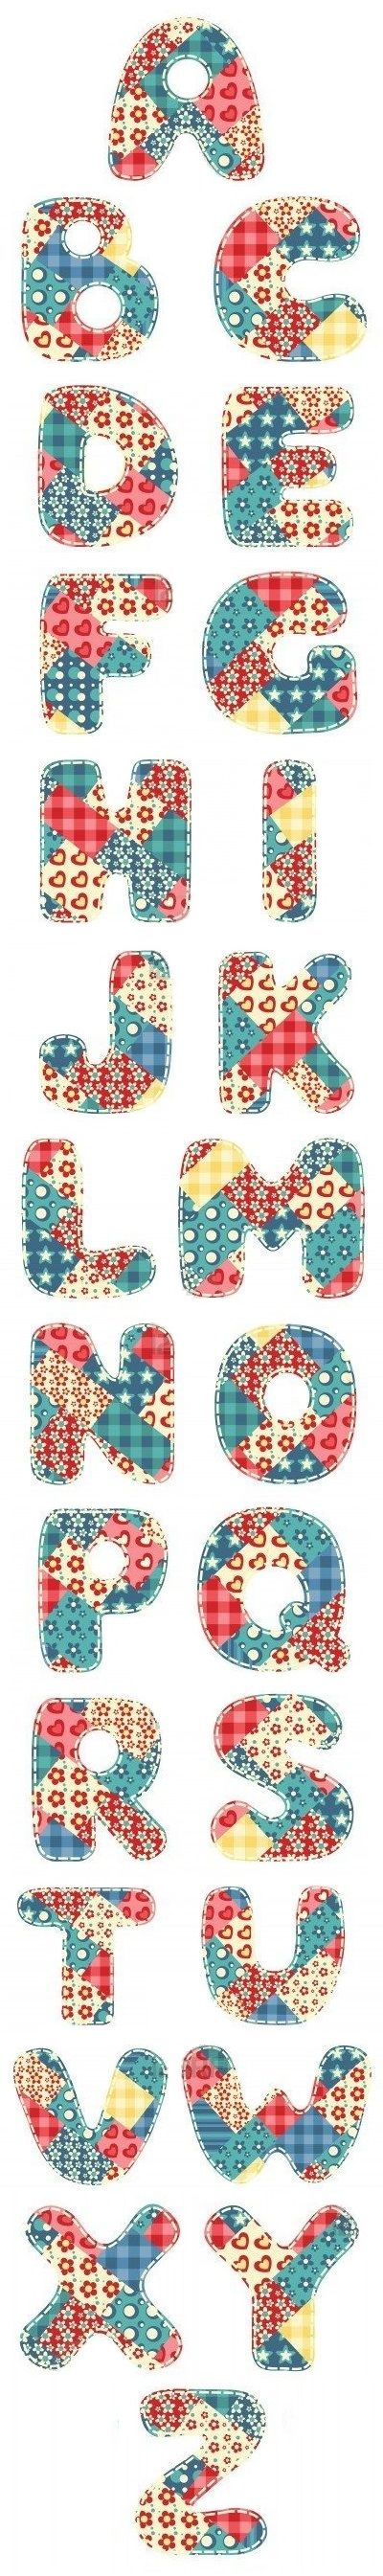 8 best Bunting ideas images on Pinterest | Garlands, Bunting ideas ...